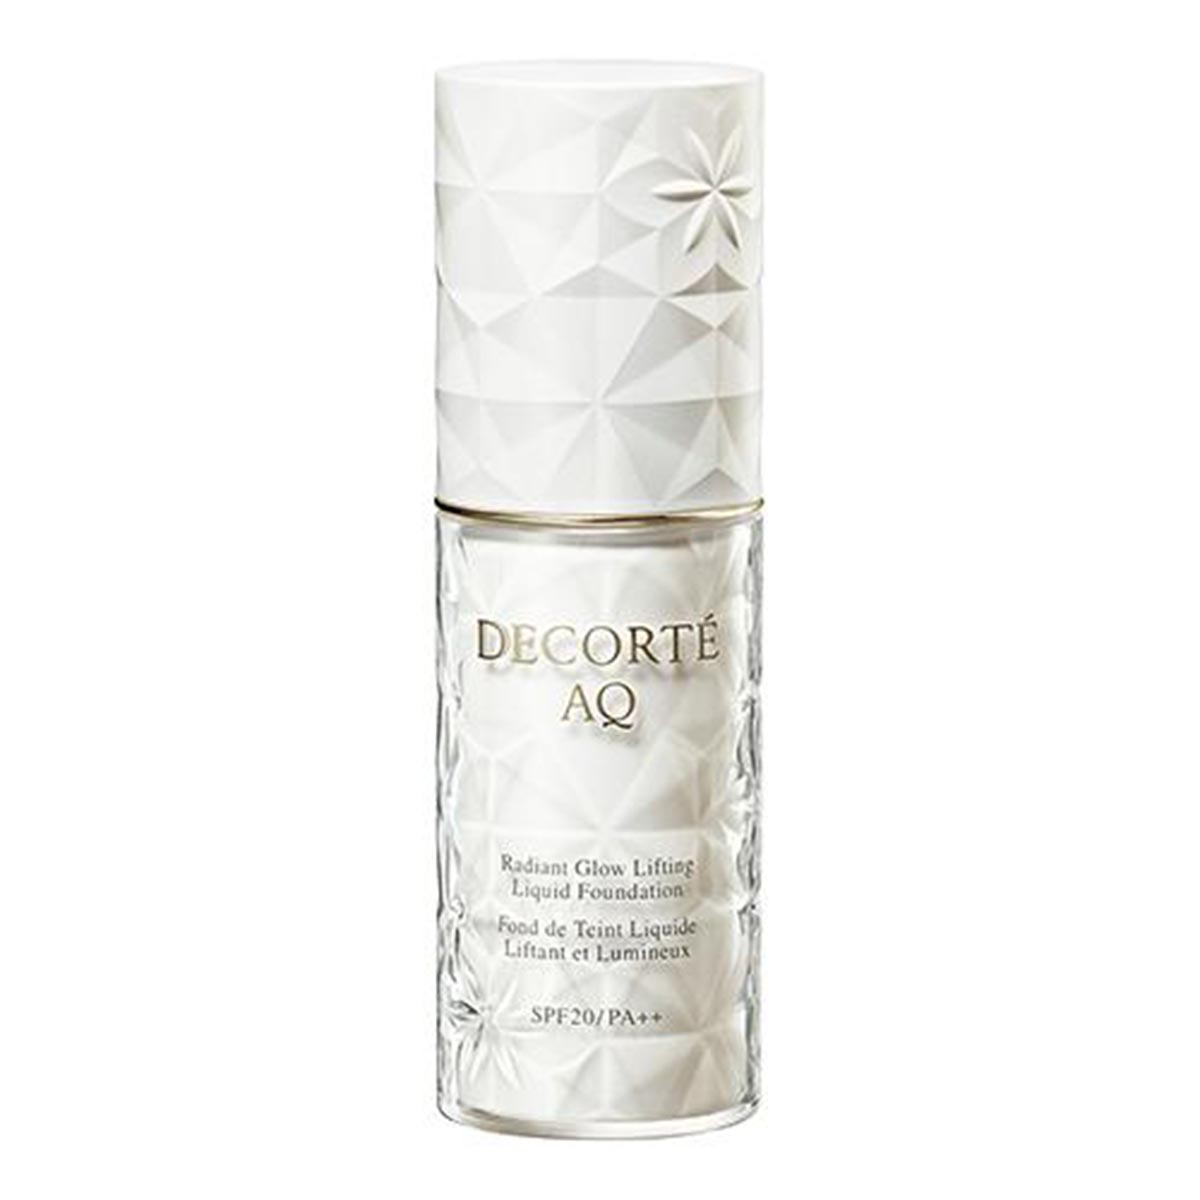 Decorte aq radiant glow lifting liquid foundation 302 30ml